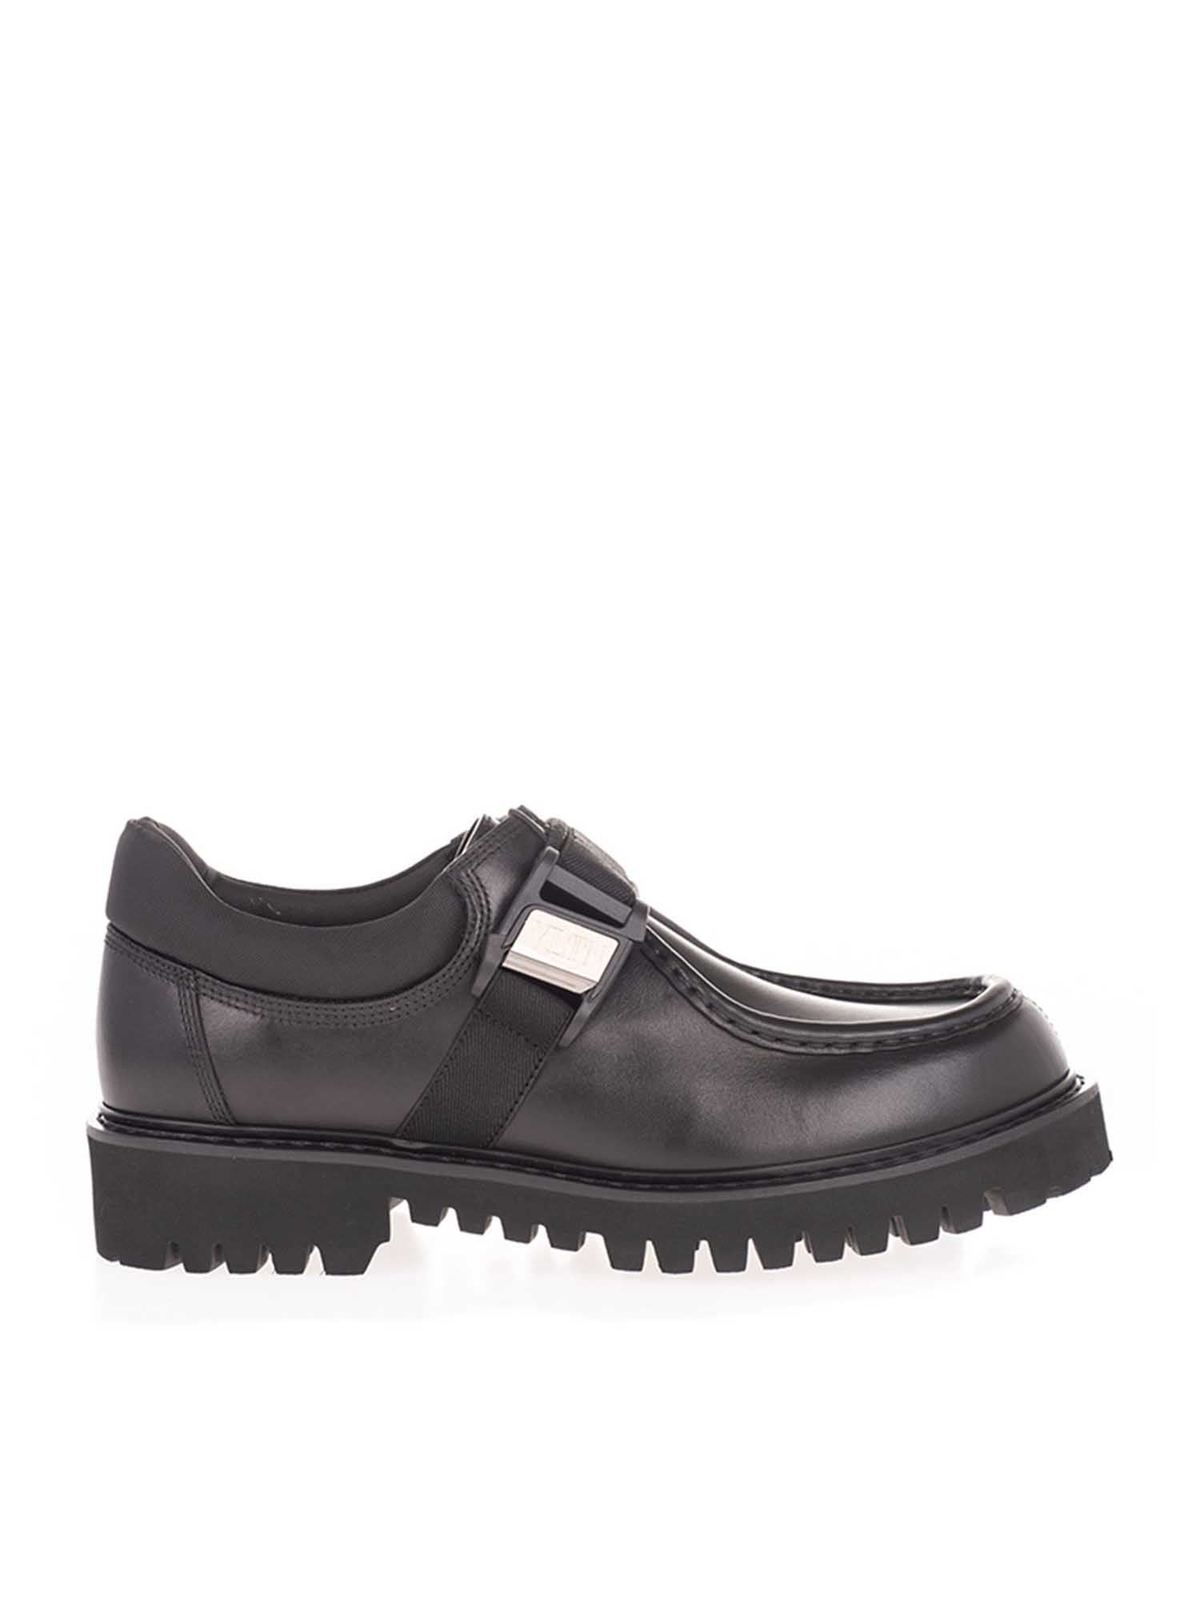 VALENTINO LOAFERS BUCKLE IN BLACK